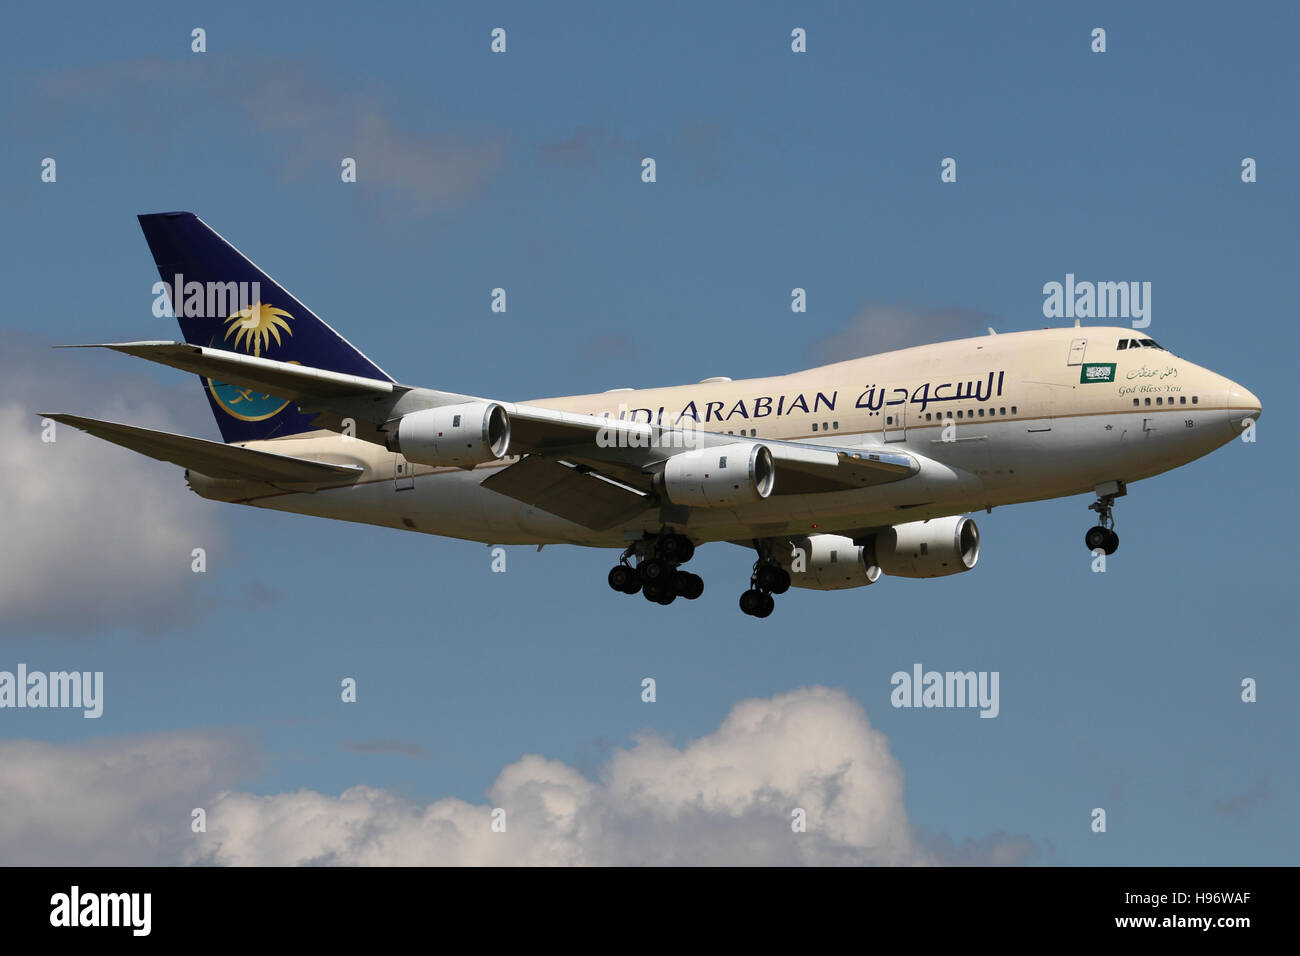 Zurich, Switzerland - July 29, 2016: Saudia Arabian, Boeing 747SP is landing at Zurich Airport - Stock Image